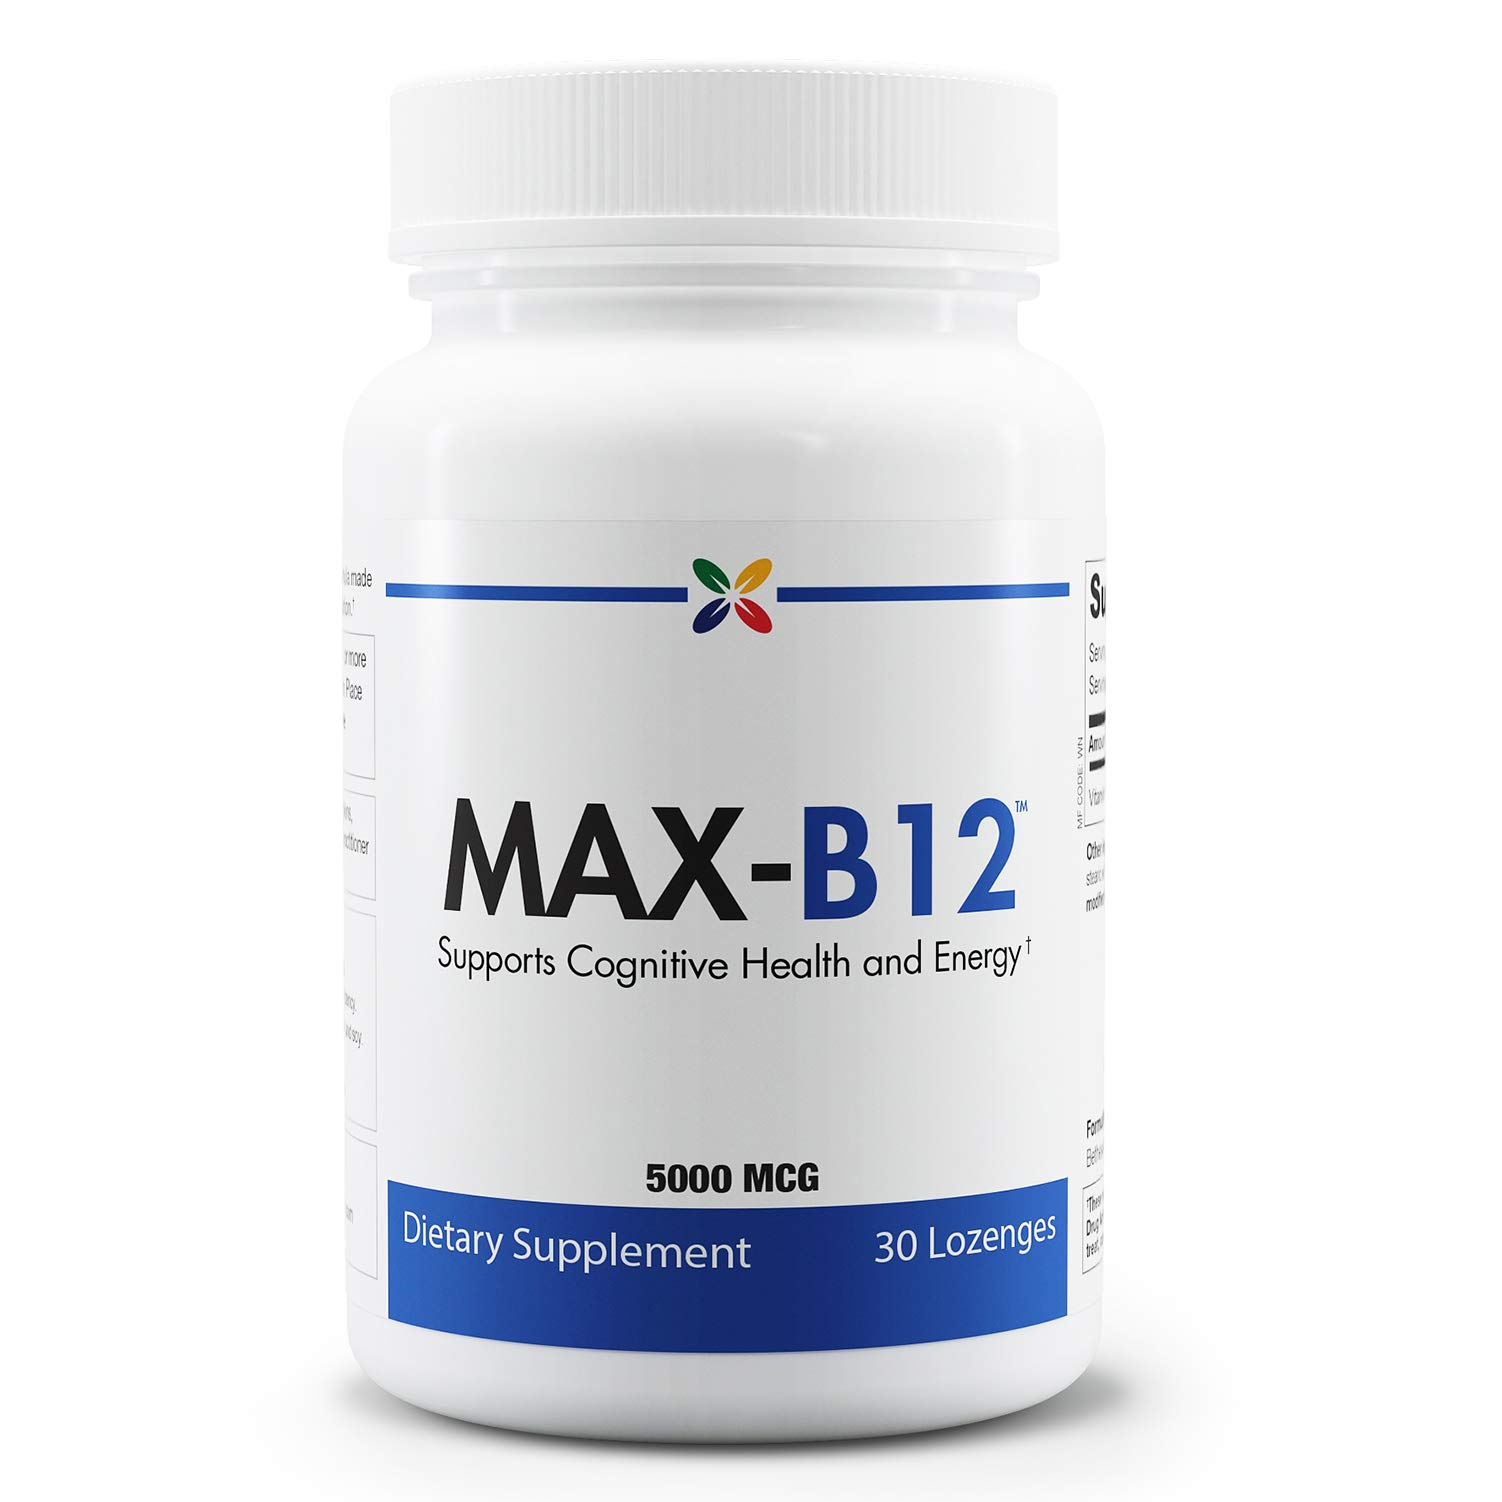 Stop Aging Now - MAX-B12 Vitamin B12 Lozenges 5000 mcg - Supports Cognitive Health and Energy - 30 Lozenges